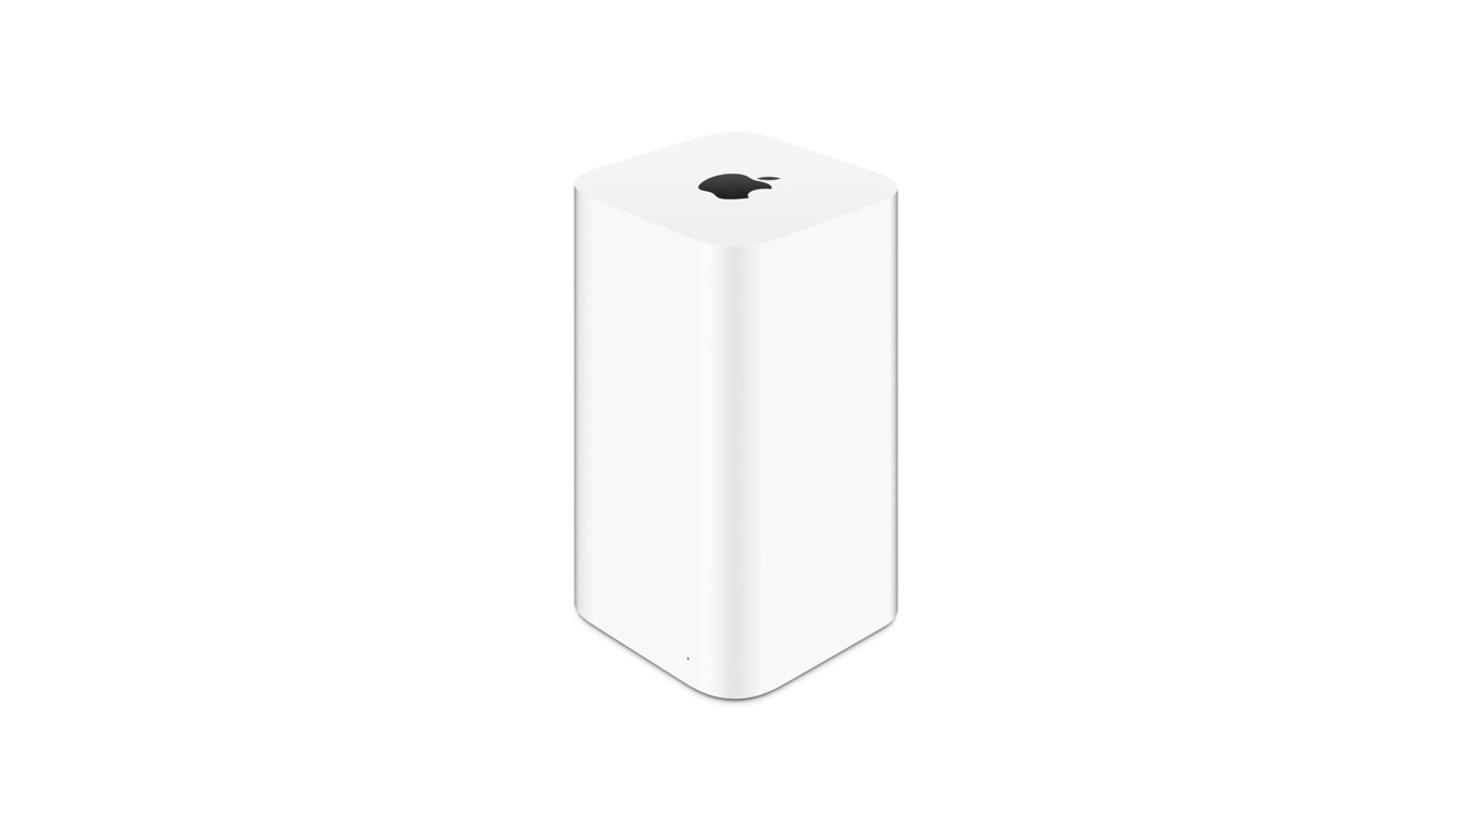 Apple AirPort Router